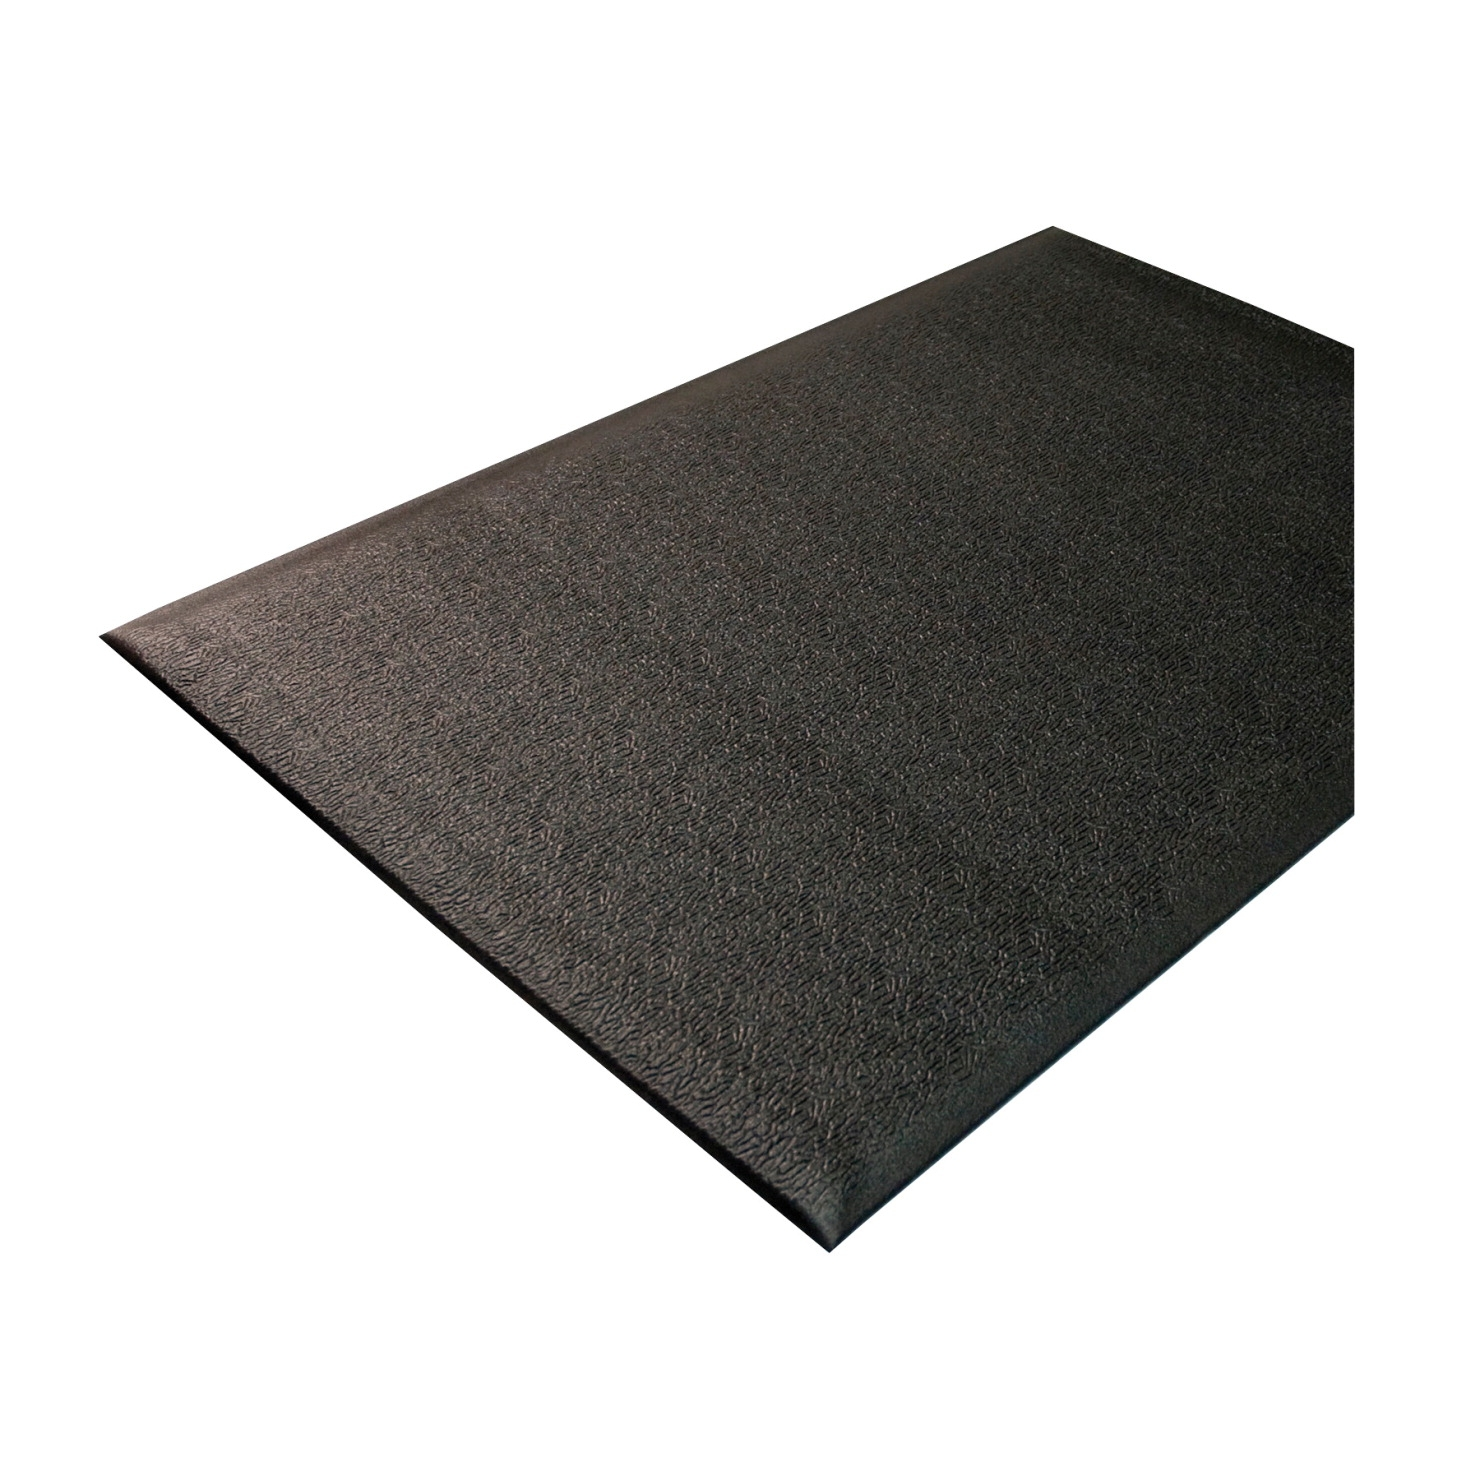 Genuine Joe Soft Step Anti-fatigue Mat; 3 X 10 Ft; 3/8 In Thickness; Nitrile Rubber/vinyl; Black - 1310535 - Baseball And Softball Baseball Pitching Rubbers 1310535